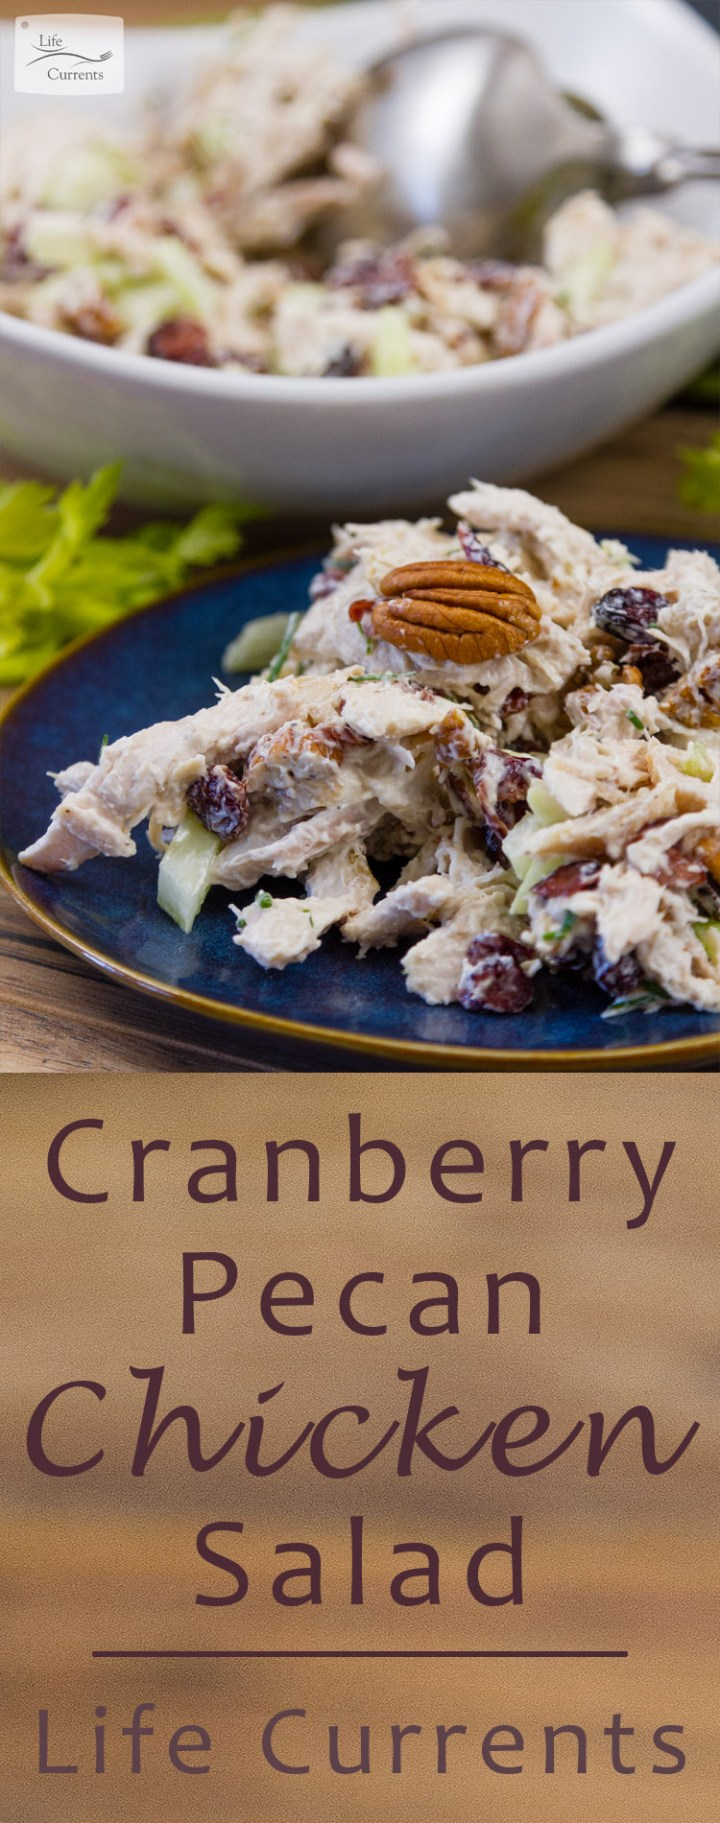 Cranberry Pecan Chicken Salad on a blue plate with the serving bowl in the background. Plus the title